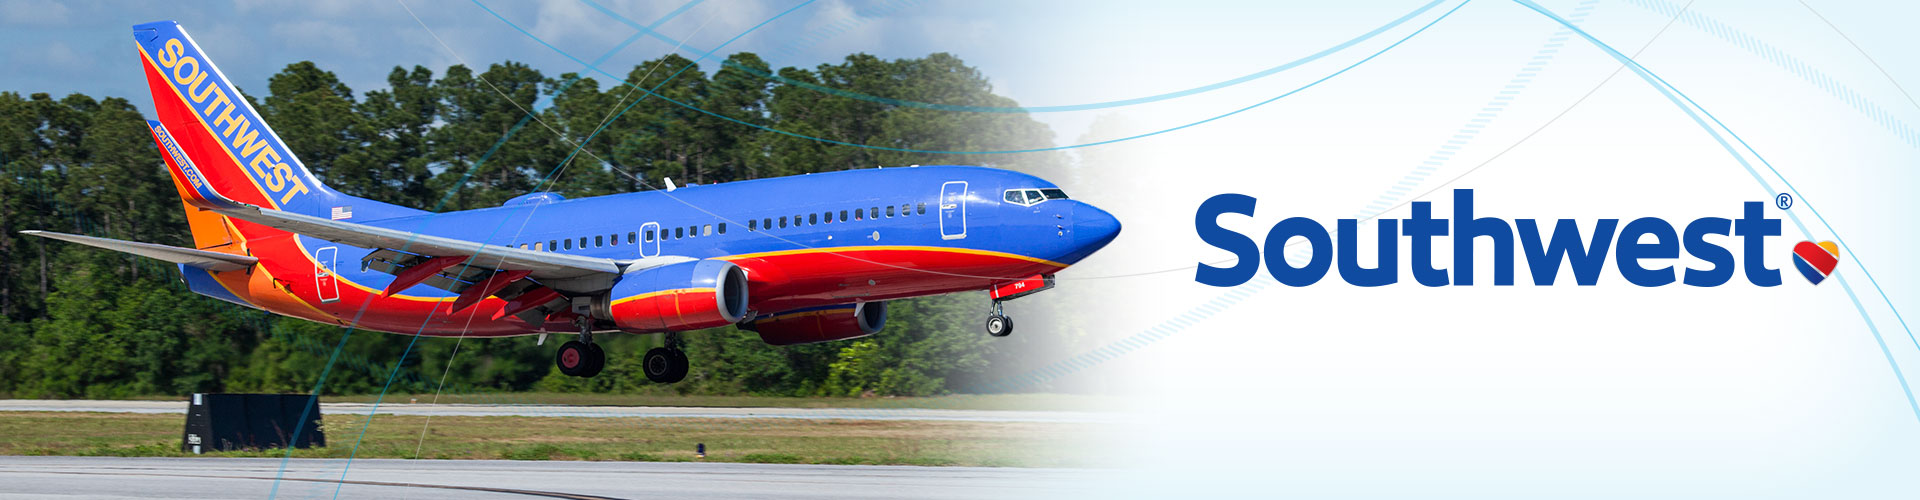 airlines-southwest-banner-1920x500